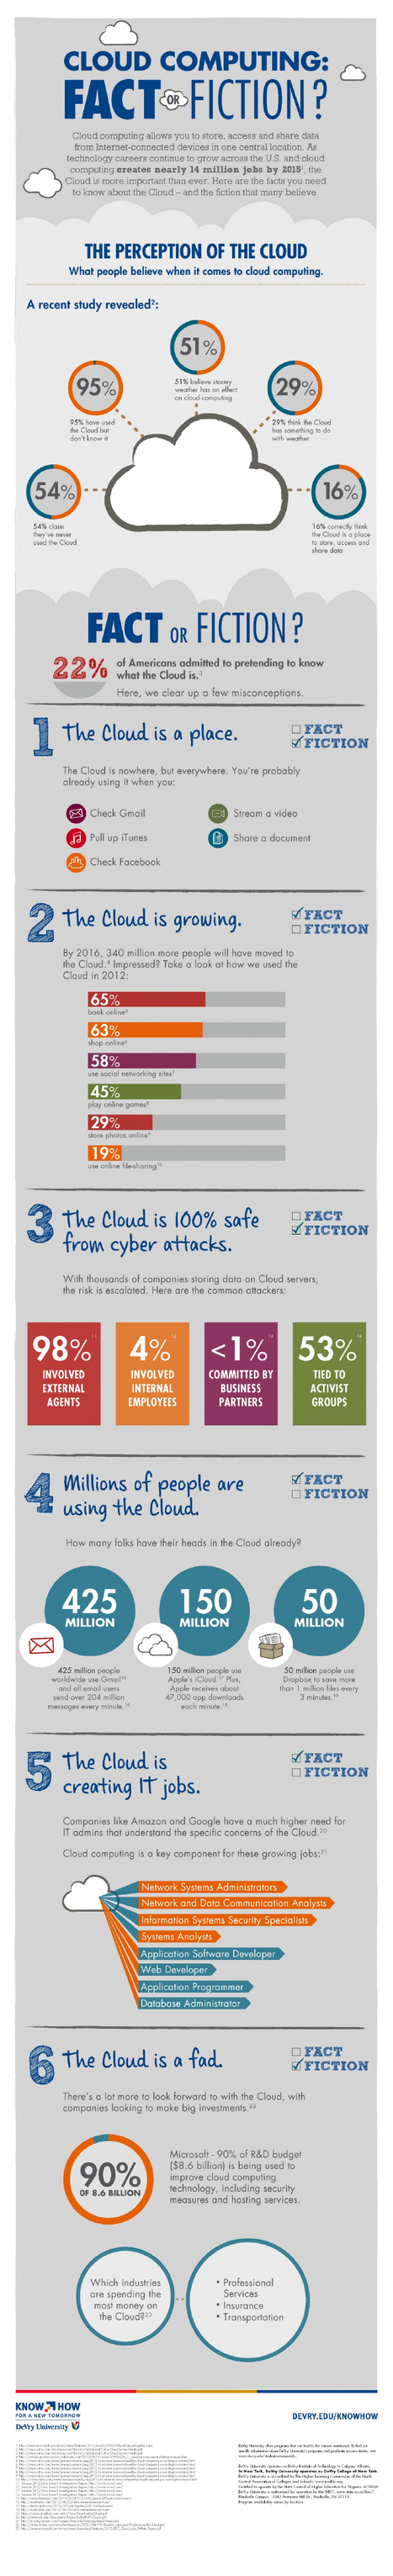 INFOGRAPHIC: Cloud computing! Fact or fiction? | L'Univers du Cloud Computing dans le Monde et Ailleurs | Scoop.it